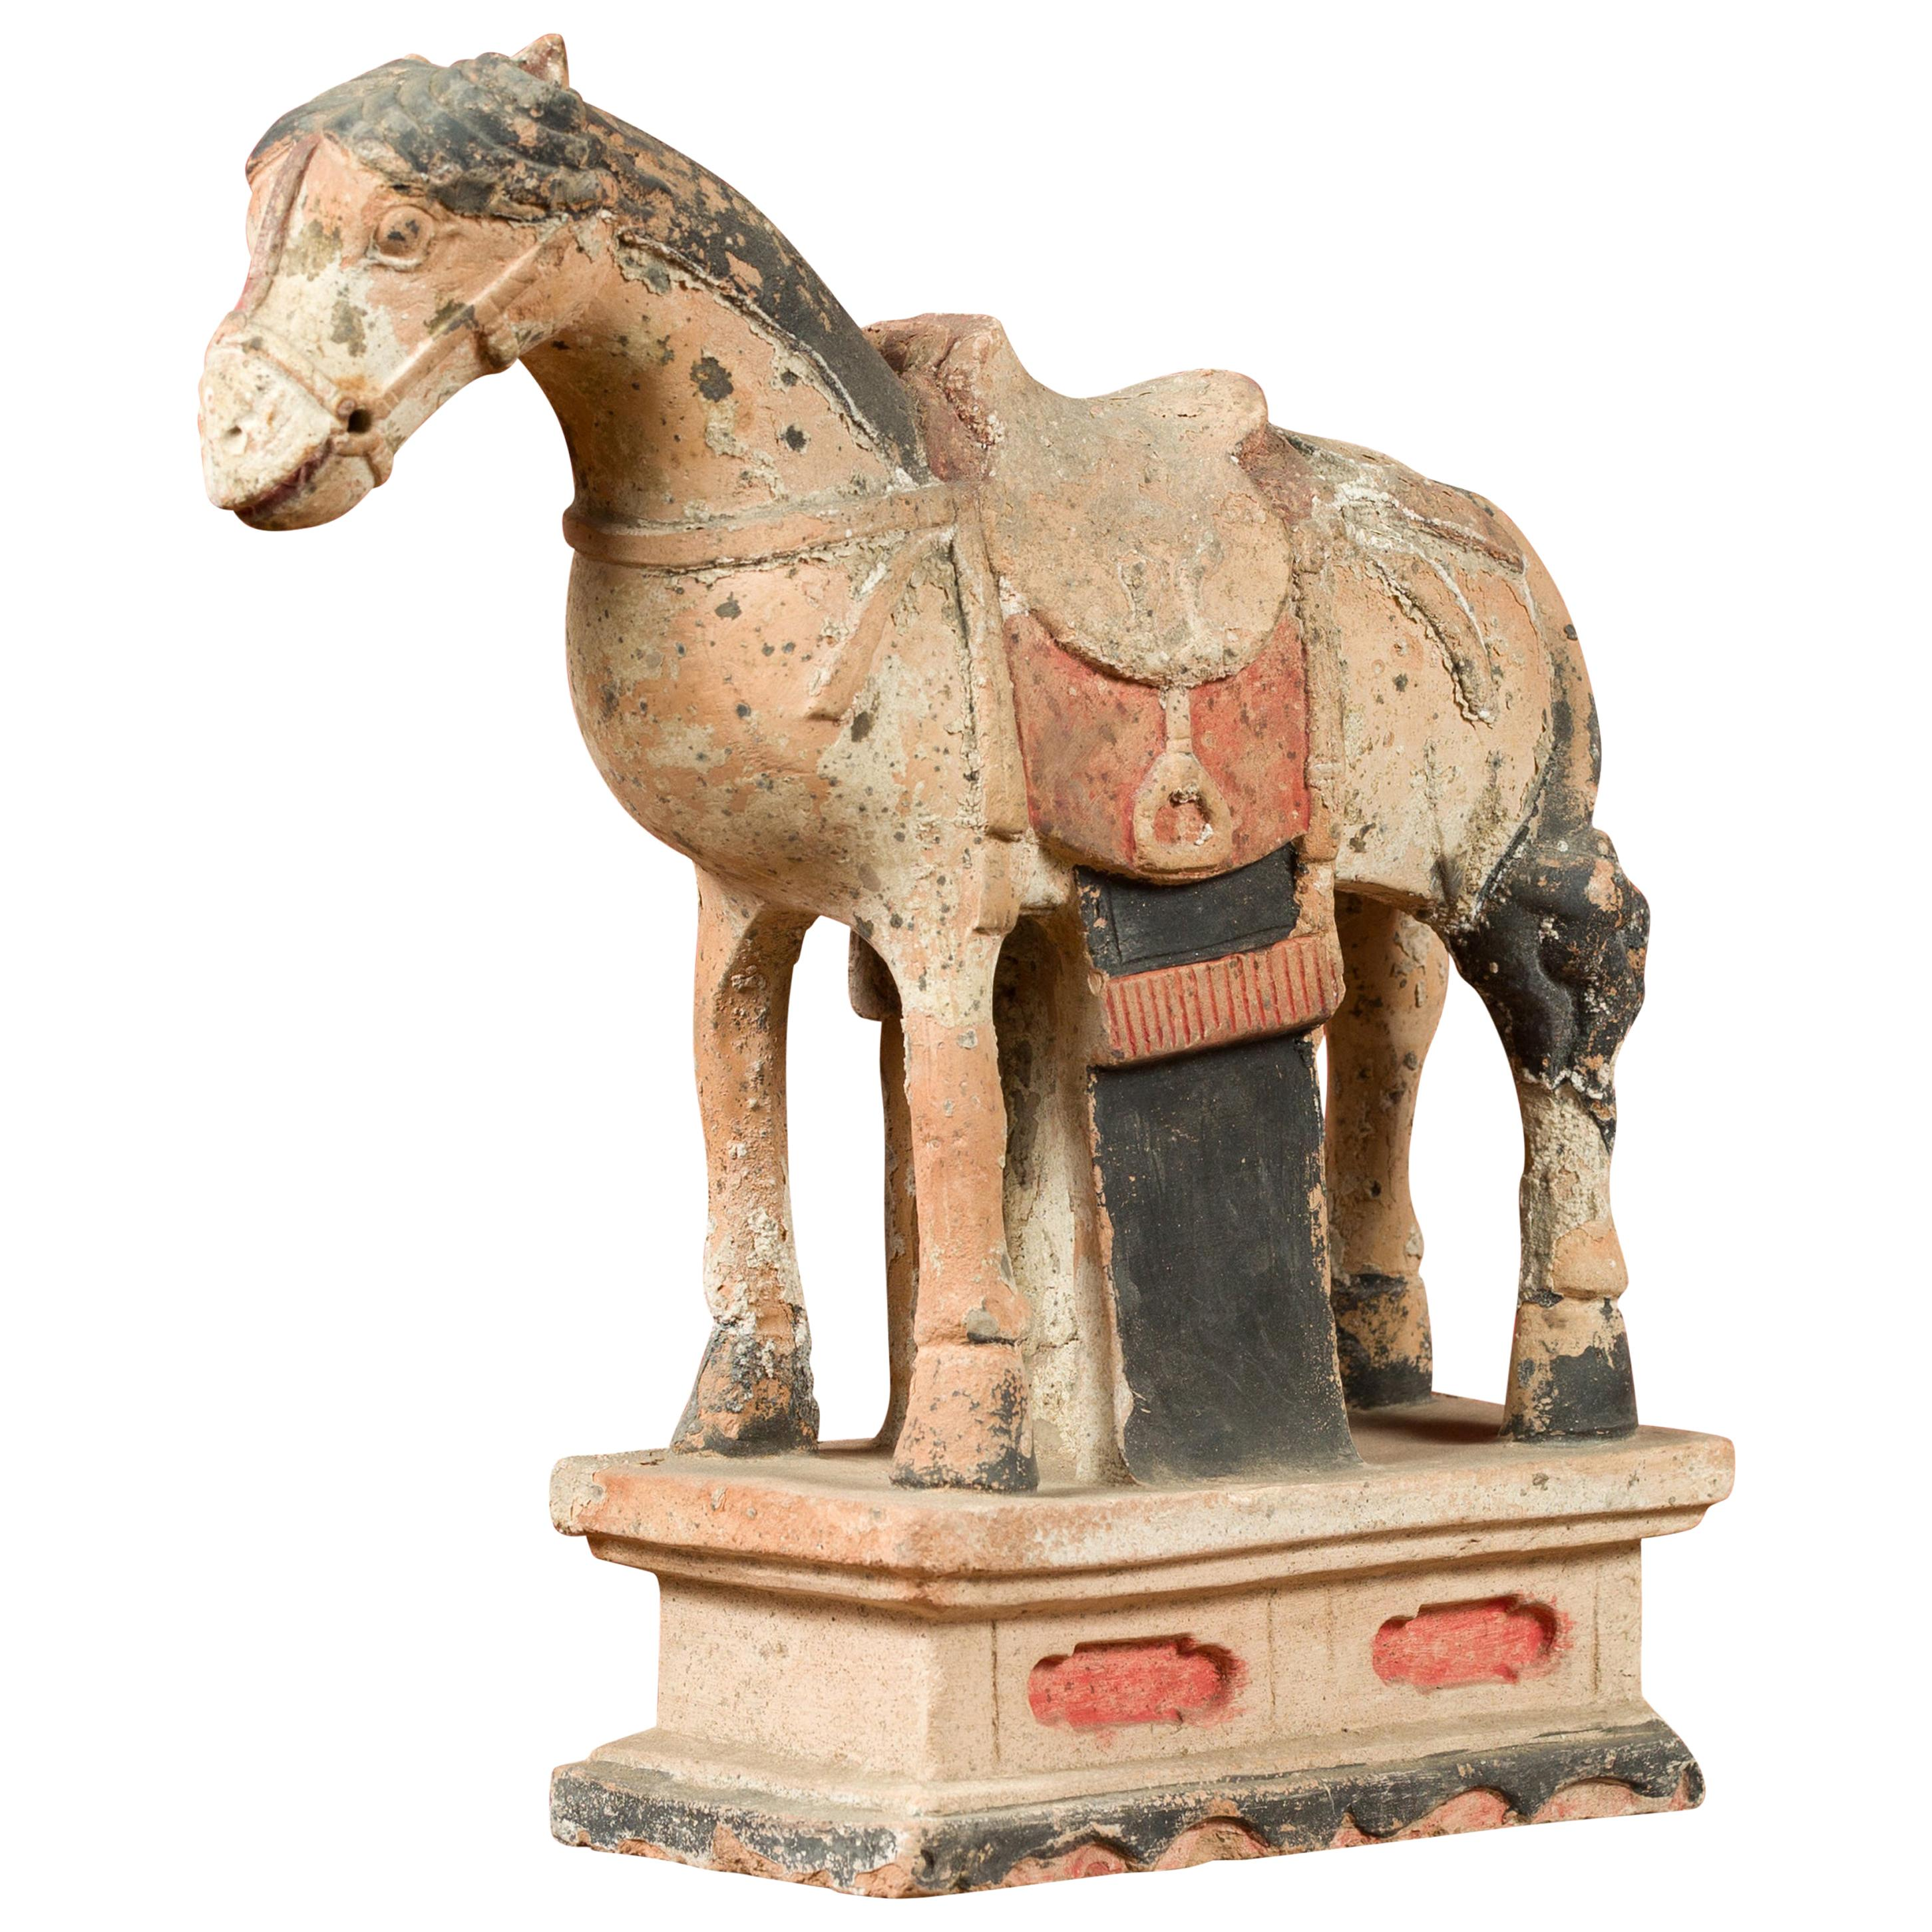 Chinese Tang Dynasty Horse Model circa 618-907 AD with Original Pigmentation